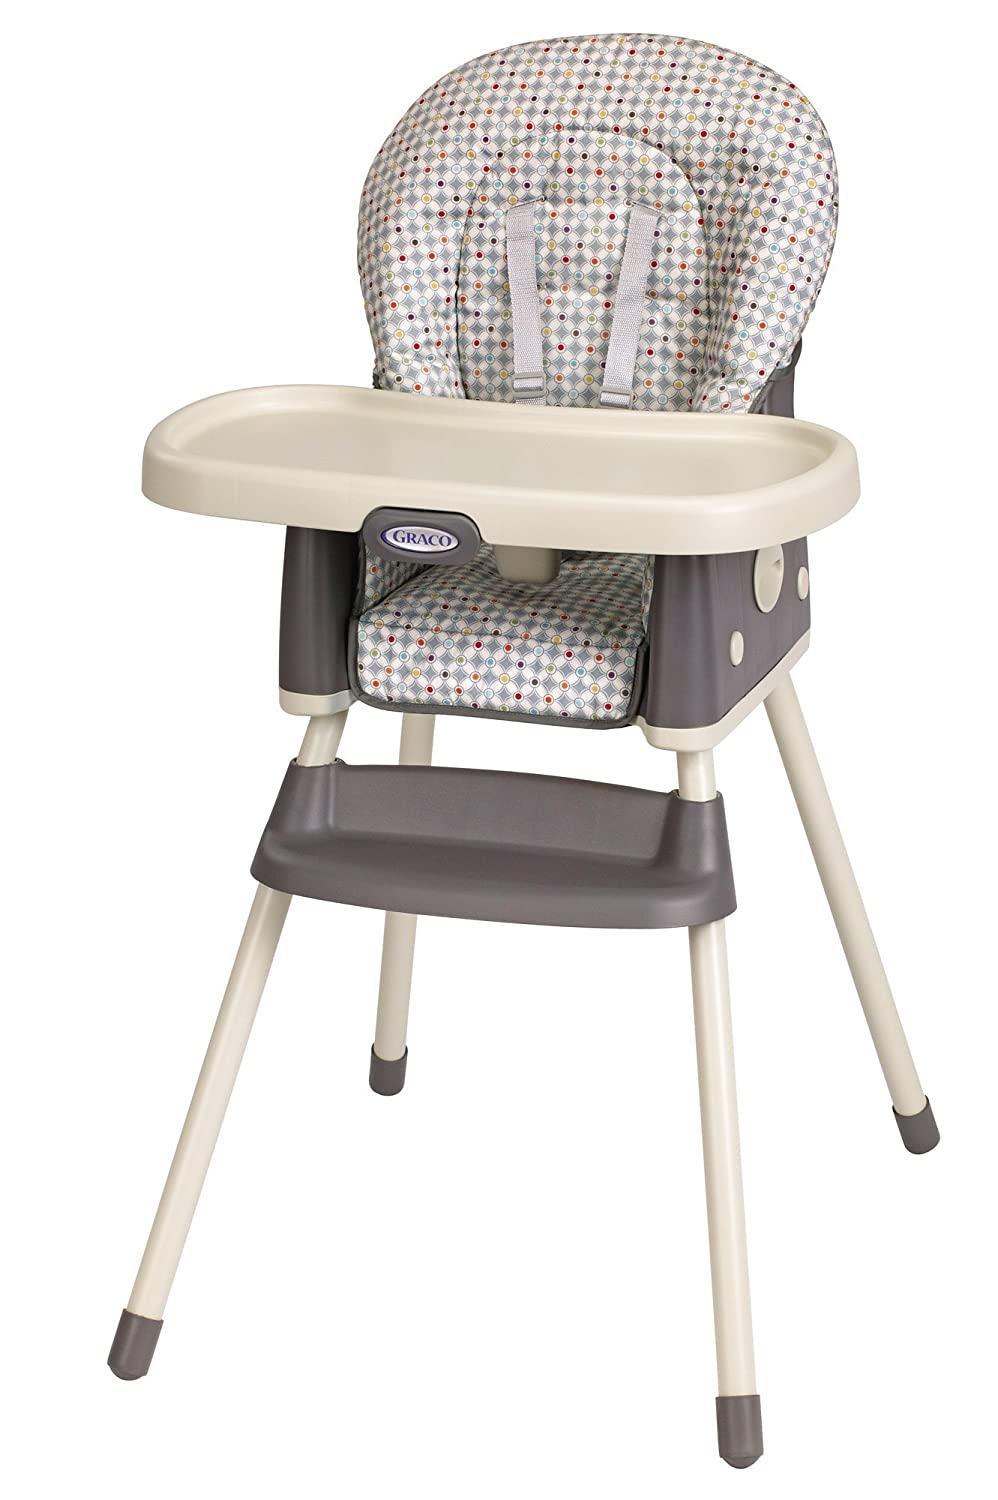 Graco Pasadena Diamond Simple Switch Booster Seat Deluxe